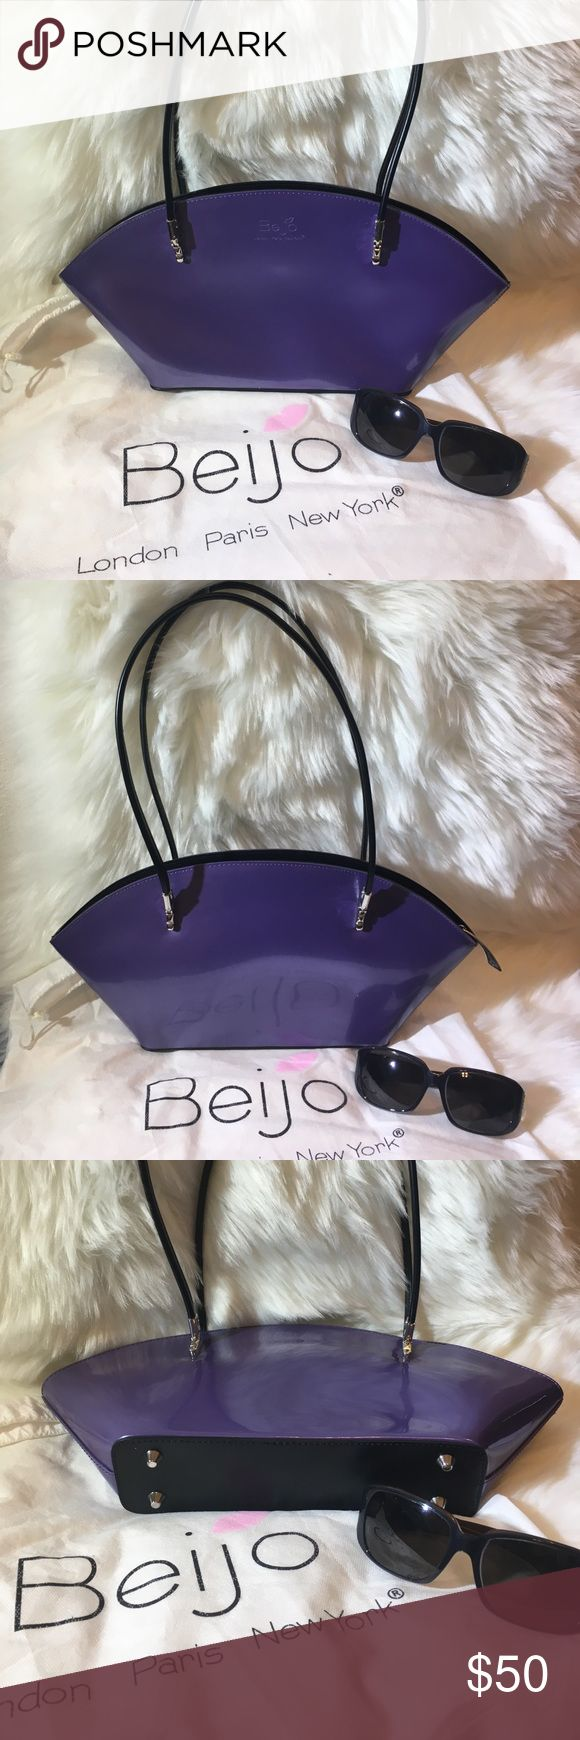 NEOT Gorgeous purple patent Beijo bag Beautiful Beijo 'Over the Moon' shoulder bag in purple patent leather! The only flaw on this bag is an interior pen mark, as seen in photo. Nice silvertone hardware and feet. Comes with dust bag! Beijo Bags Shoulder Bags